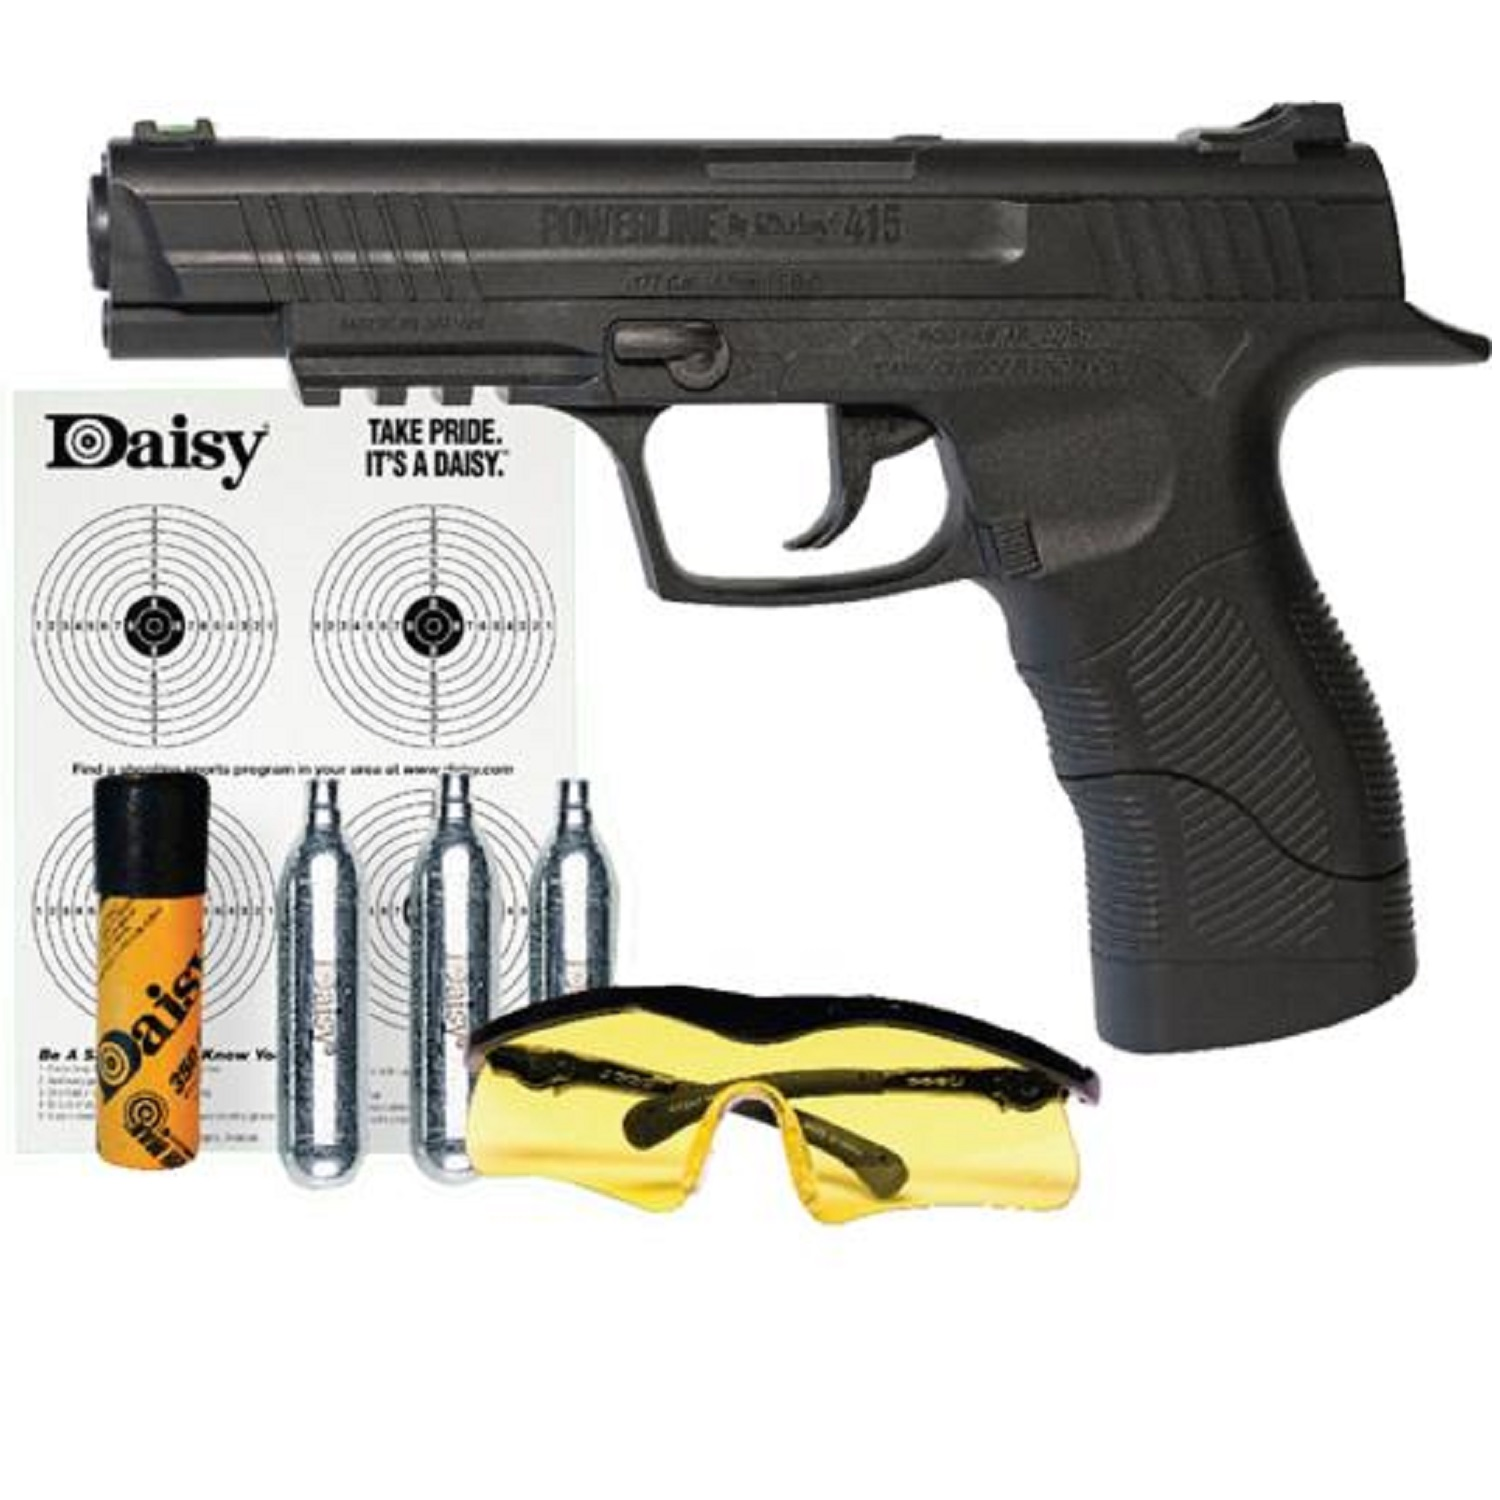 Daisy Powerline 408 Air Pistol Kit, .177 Pellet or BB, Black Finish, Plastic Grip, CO2, Semi-automatic, 8 Shot, 485 Feet by Daisy